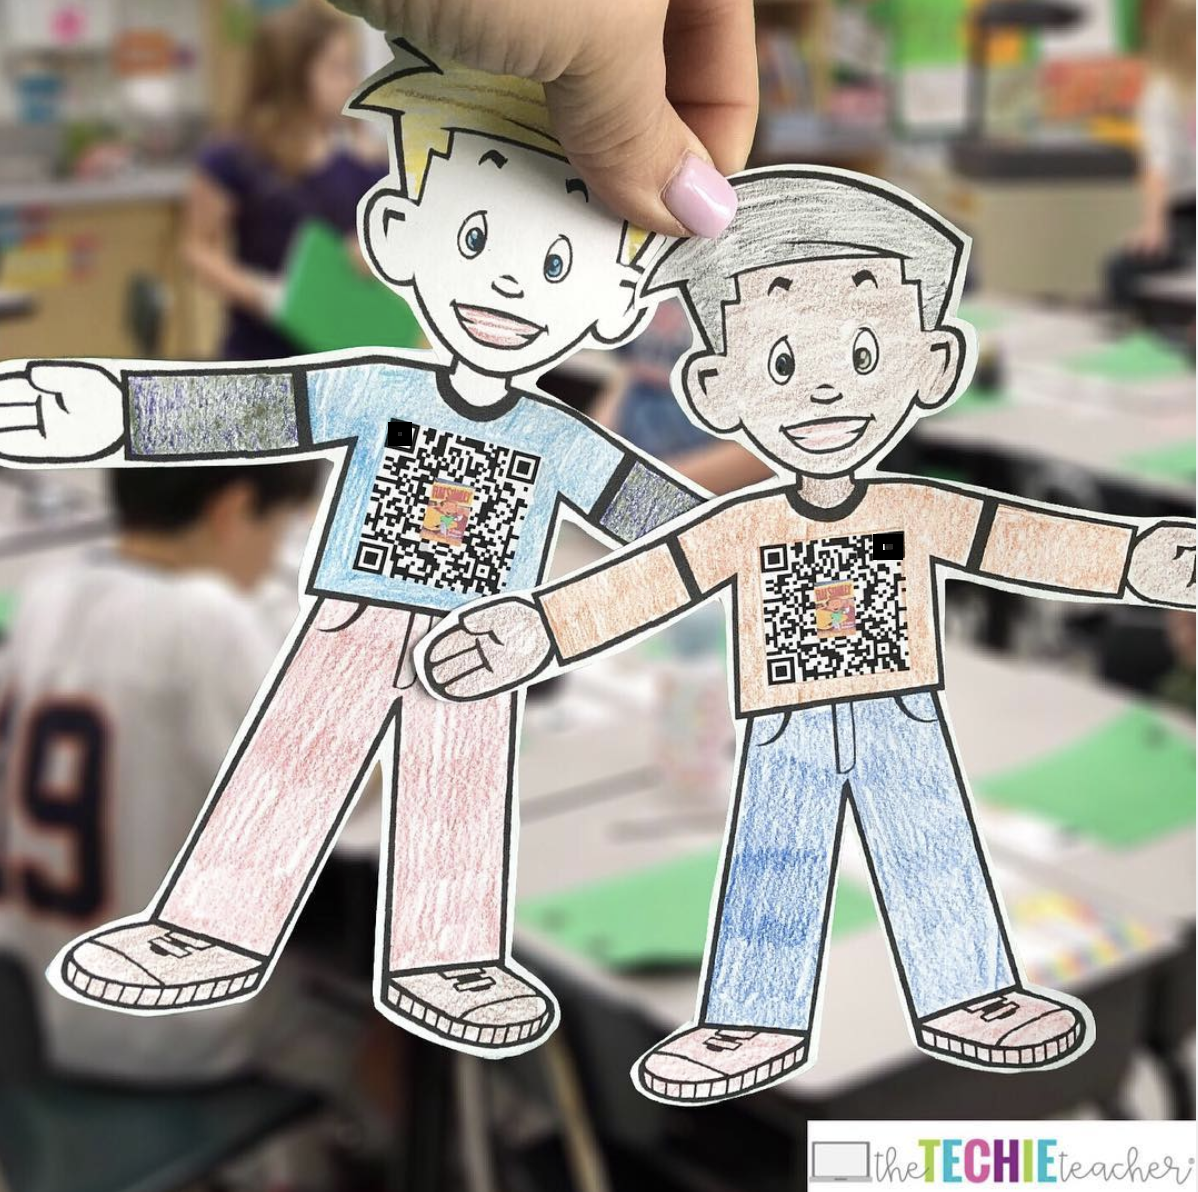 Flat Stanley 2.0: Attach a QR Code that scans to a Wakelet collection. Users can upload pictures and videos to your class' Wakelet collection and students can check in on Flat Stanley's adventures each day.